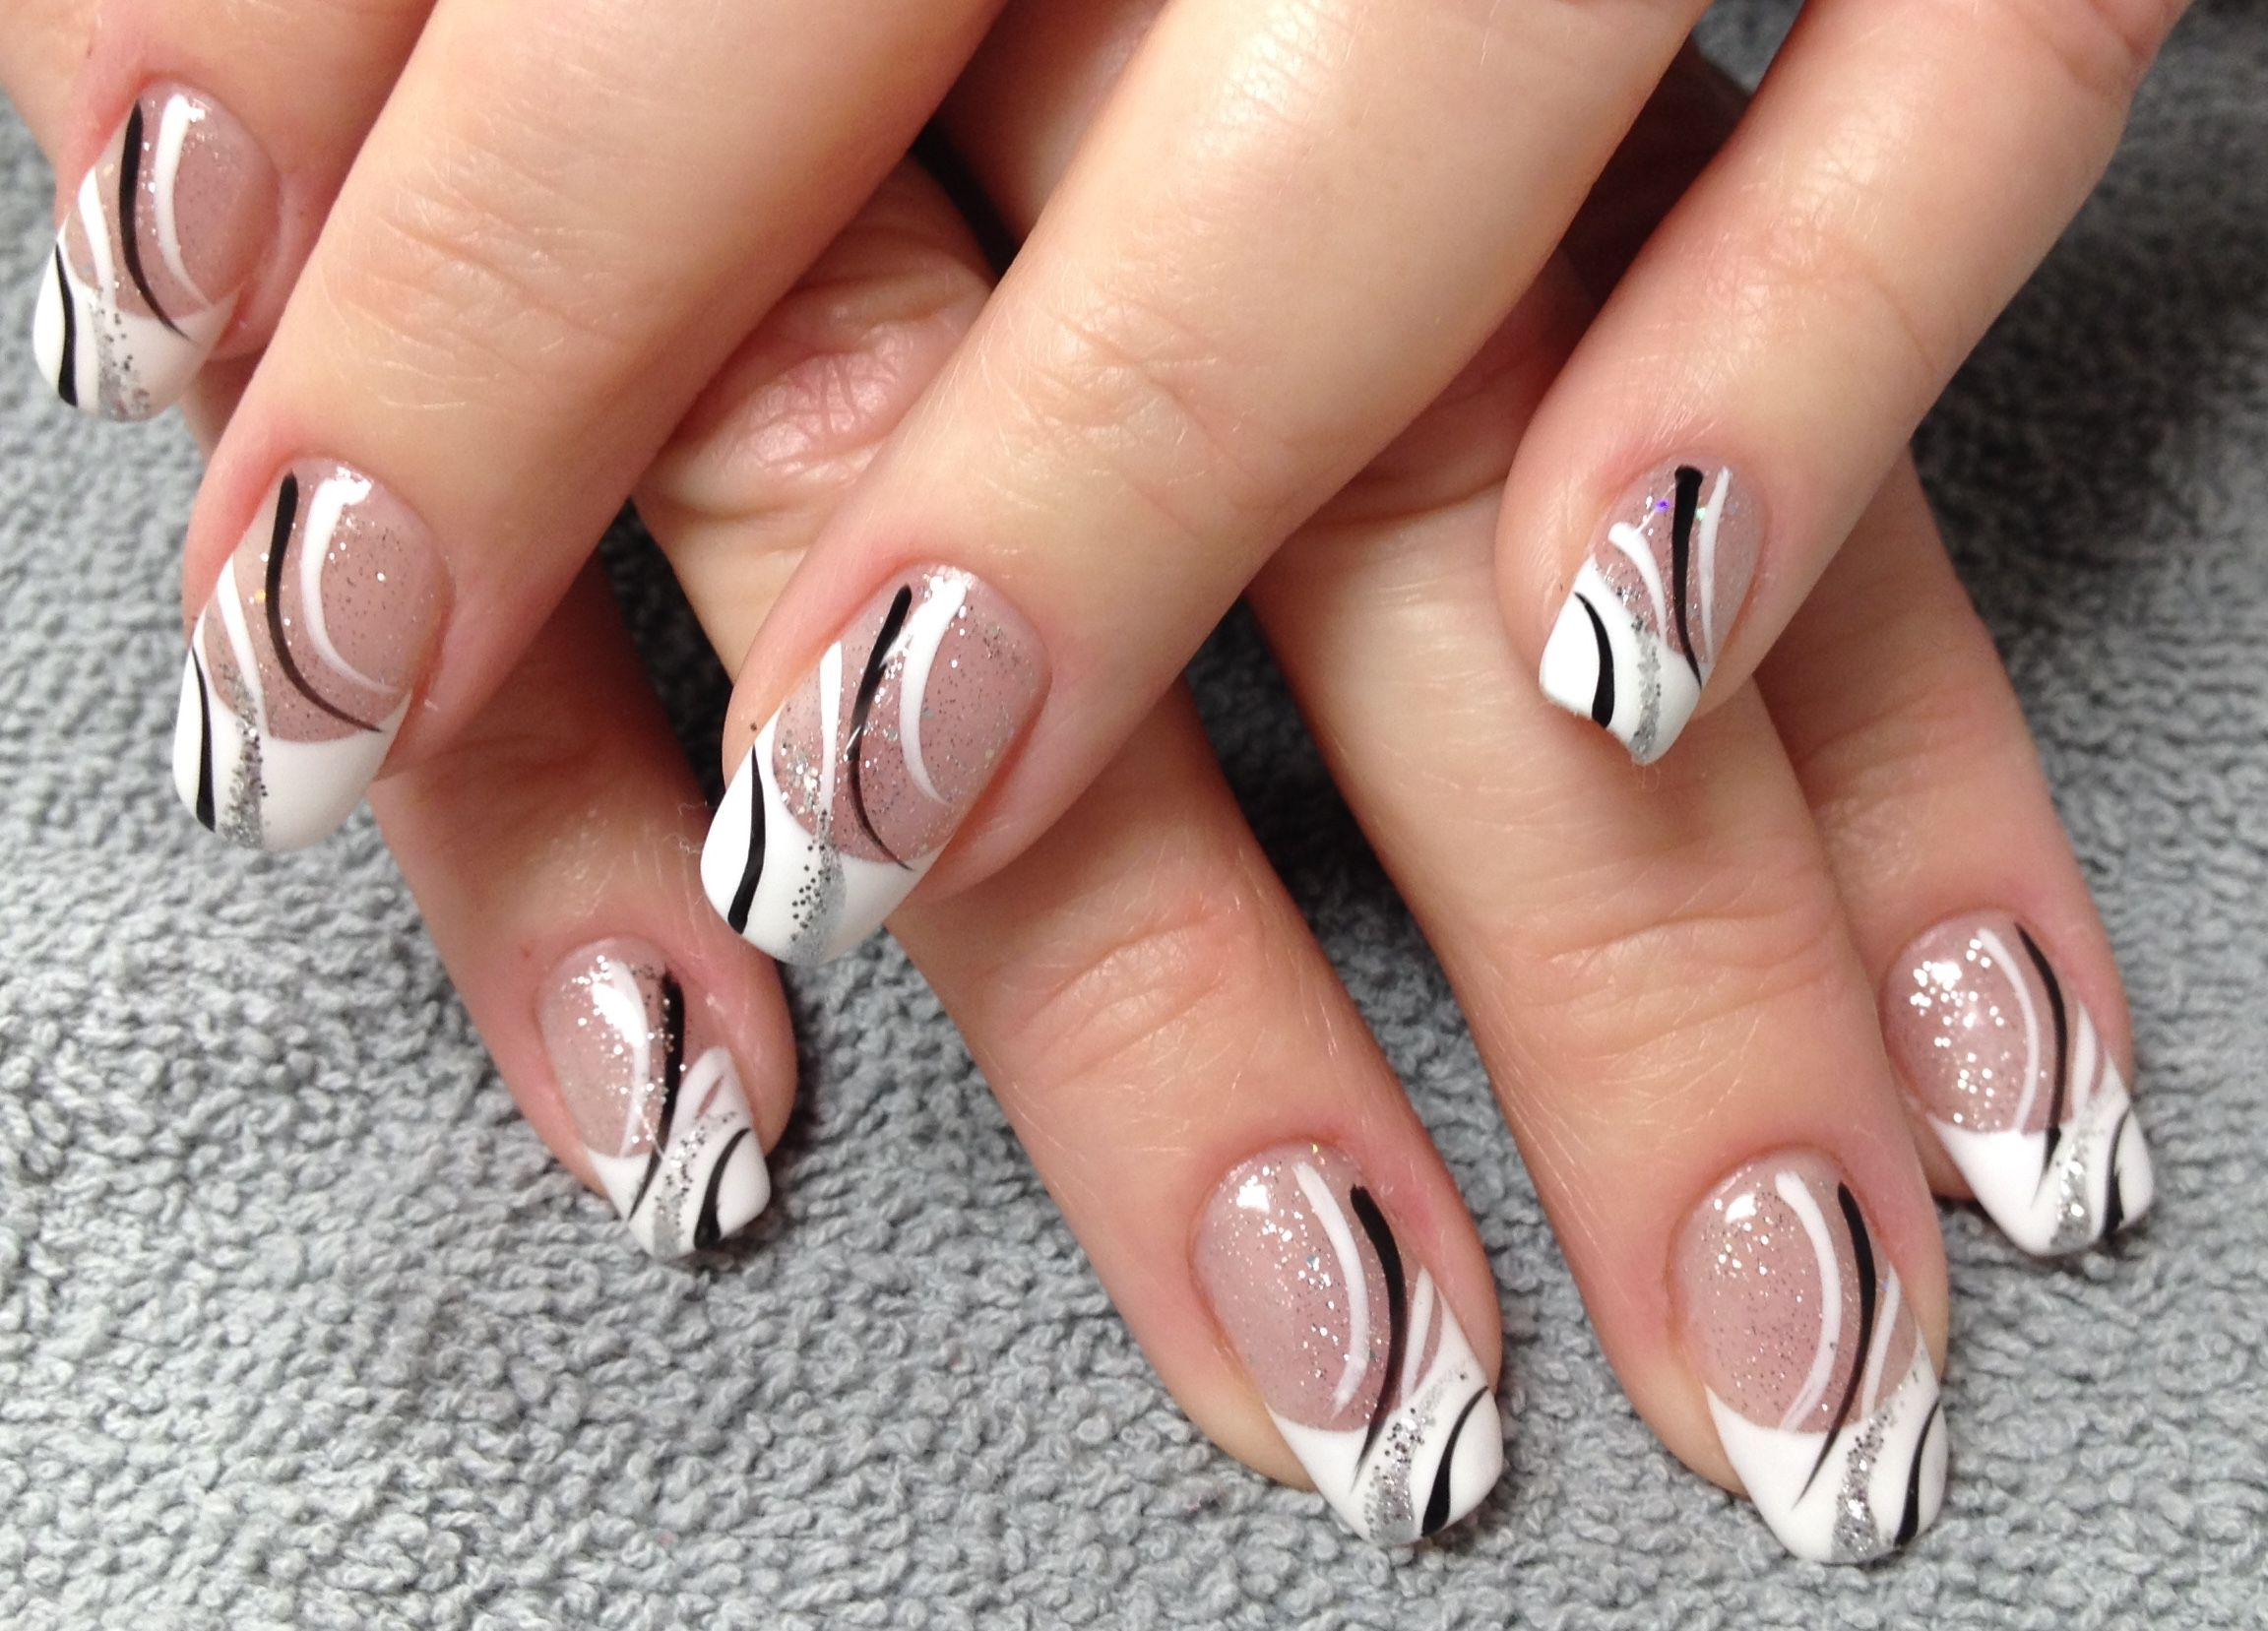 Pin by Becky Silver-Aunes on Hair, Nails & Beauty | Pinterest ...